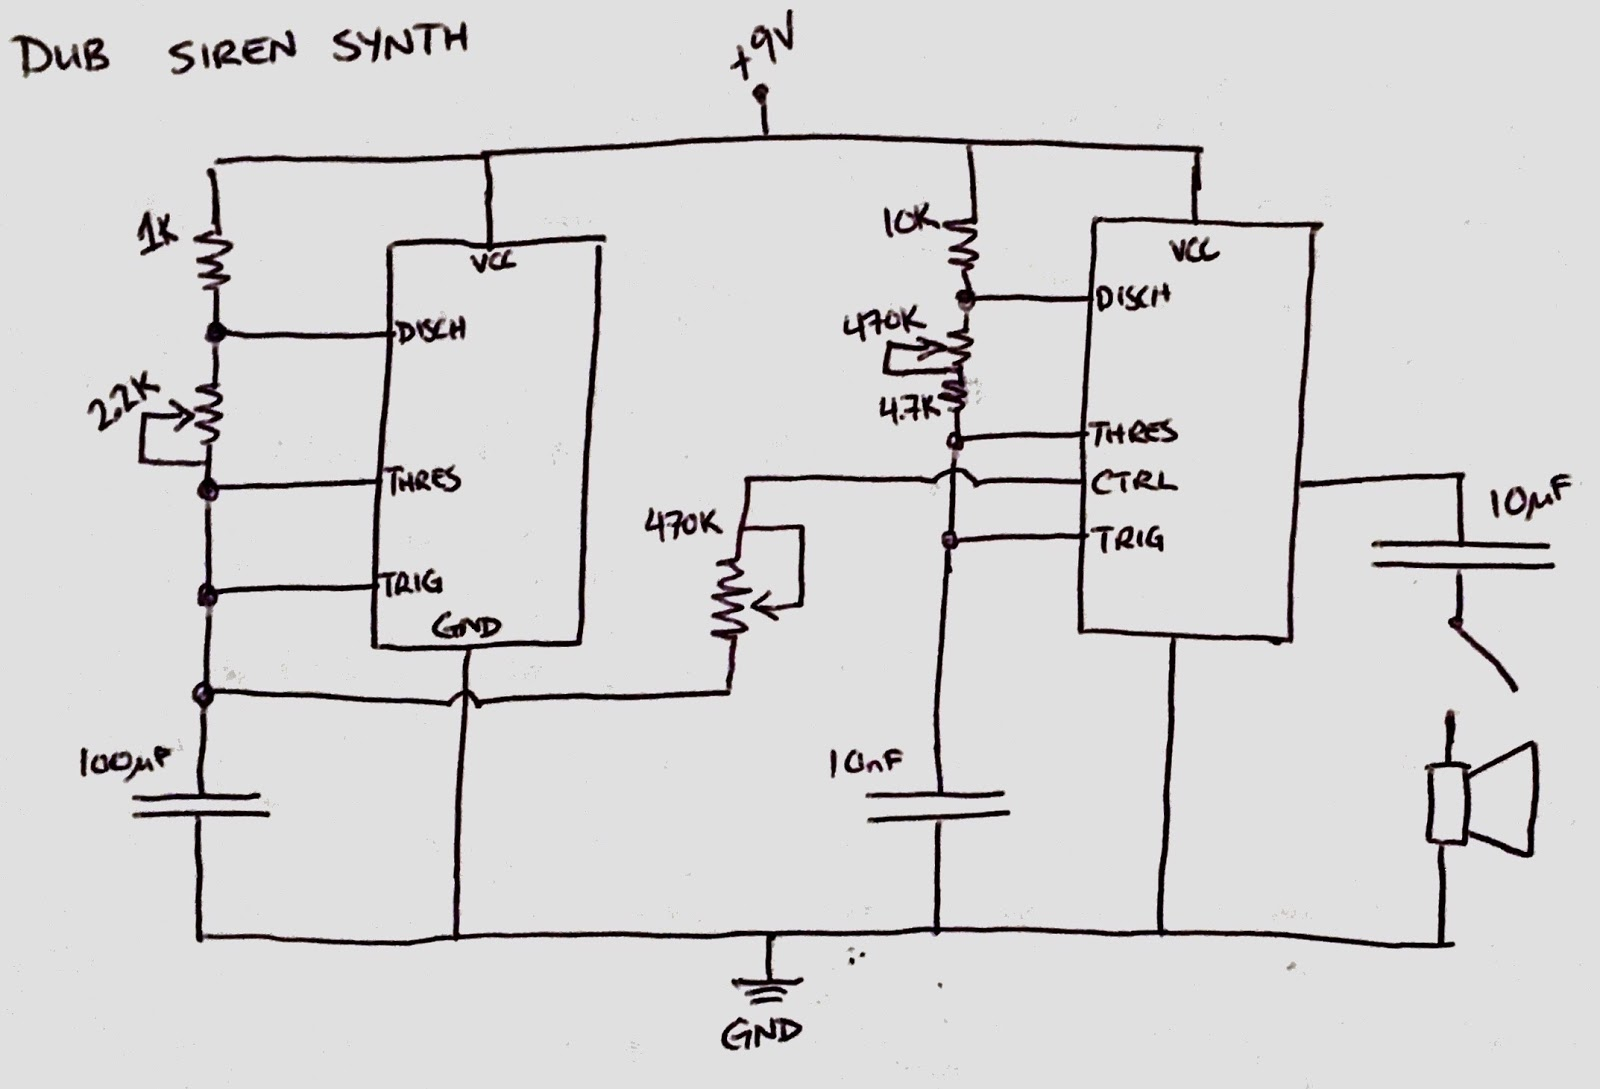 understanding the twsu synth kit